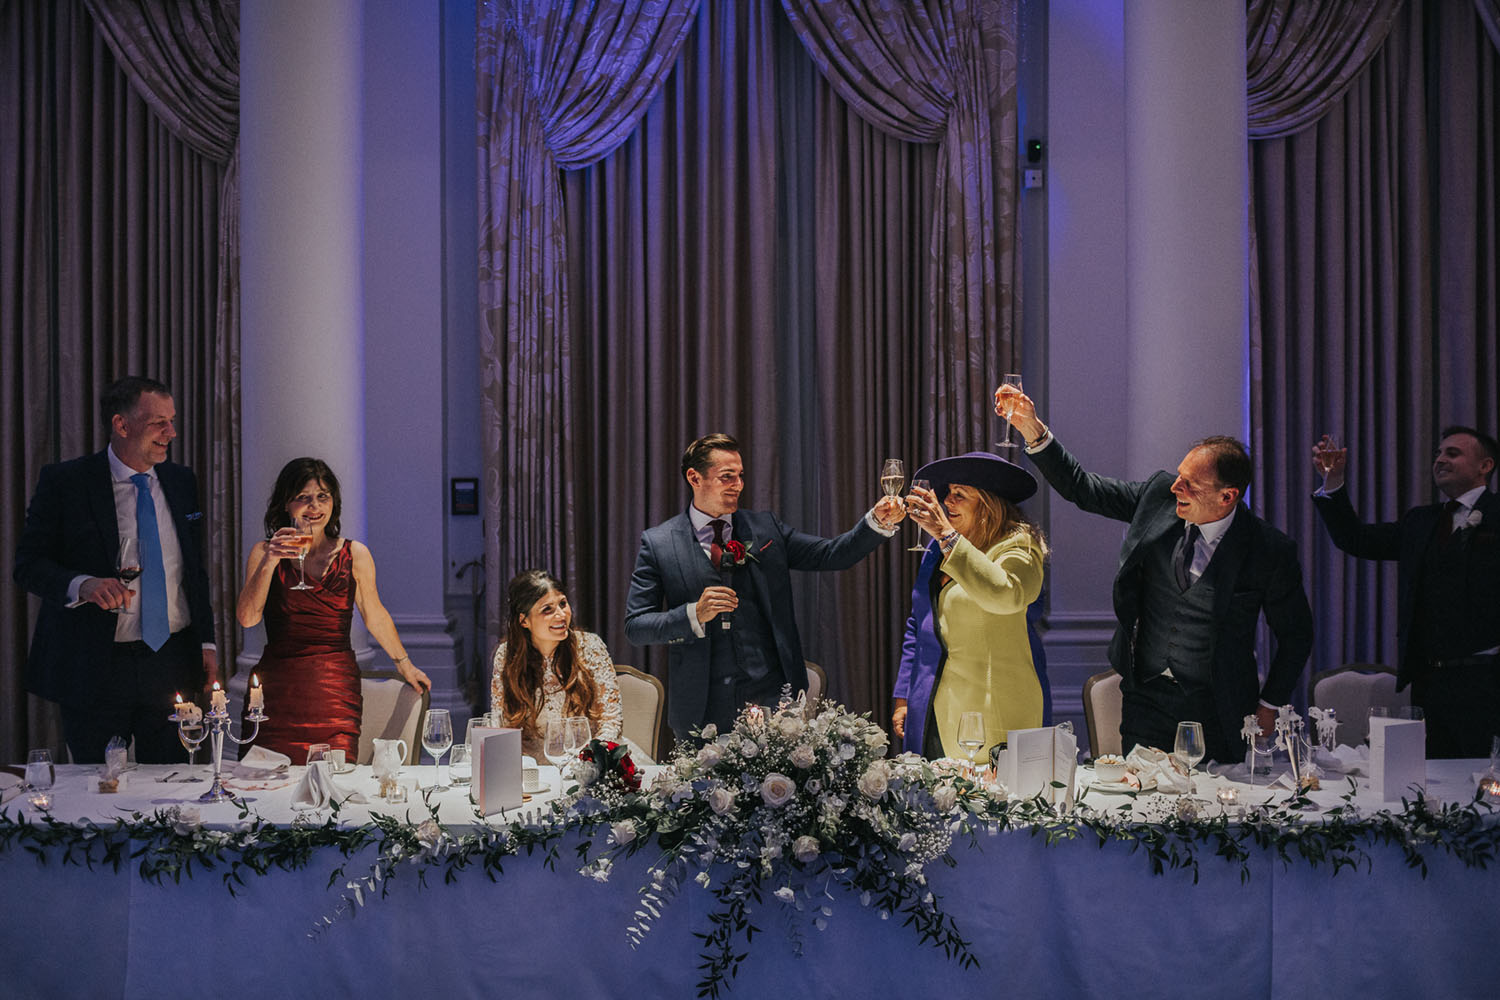 The Langham Hotel Wedding128.jpg